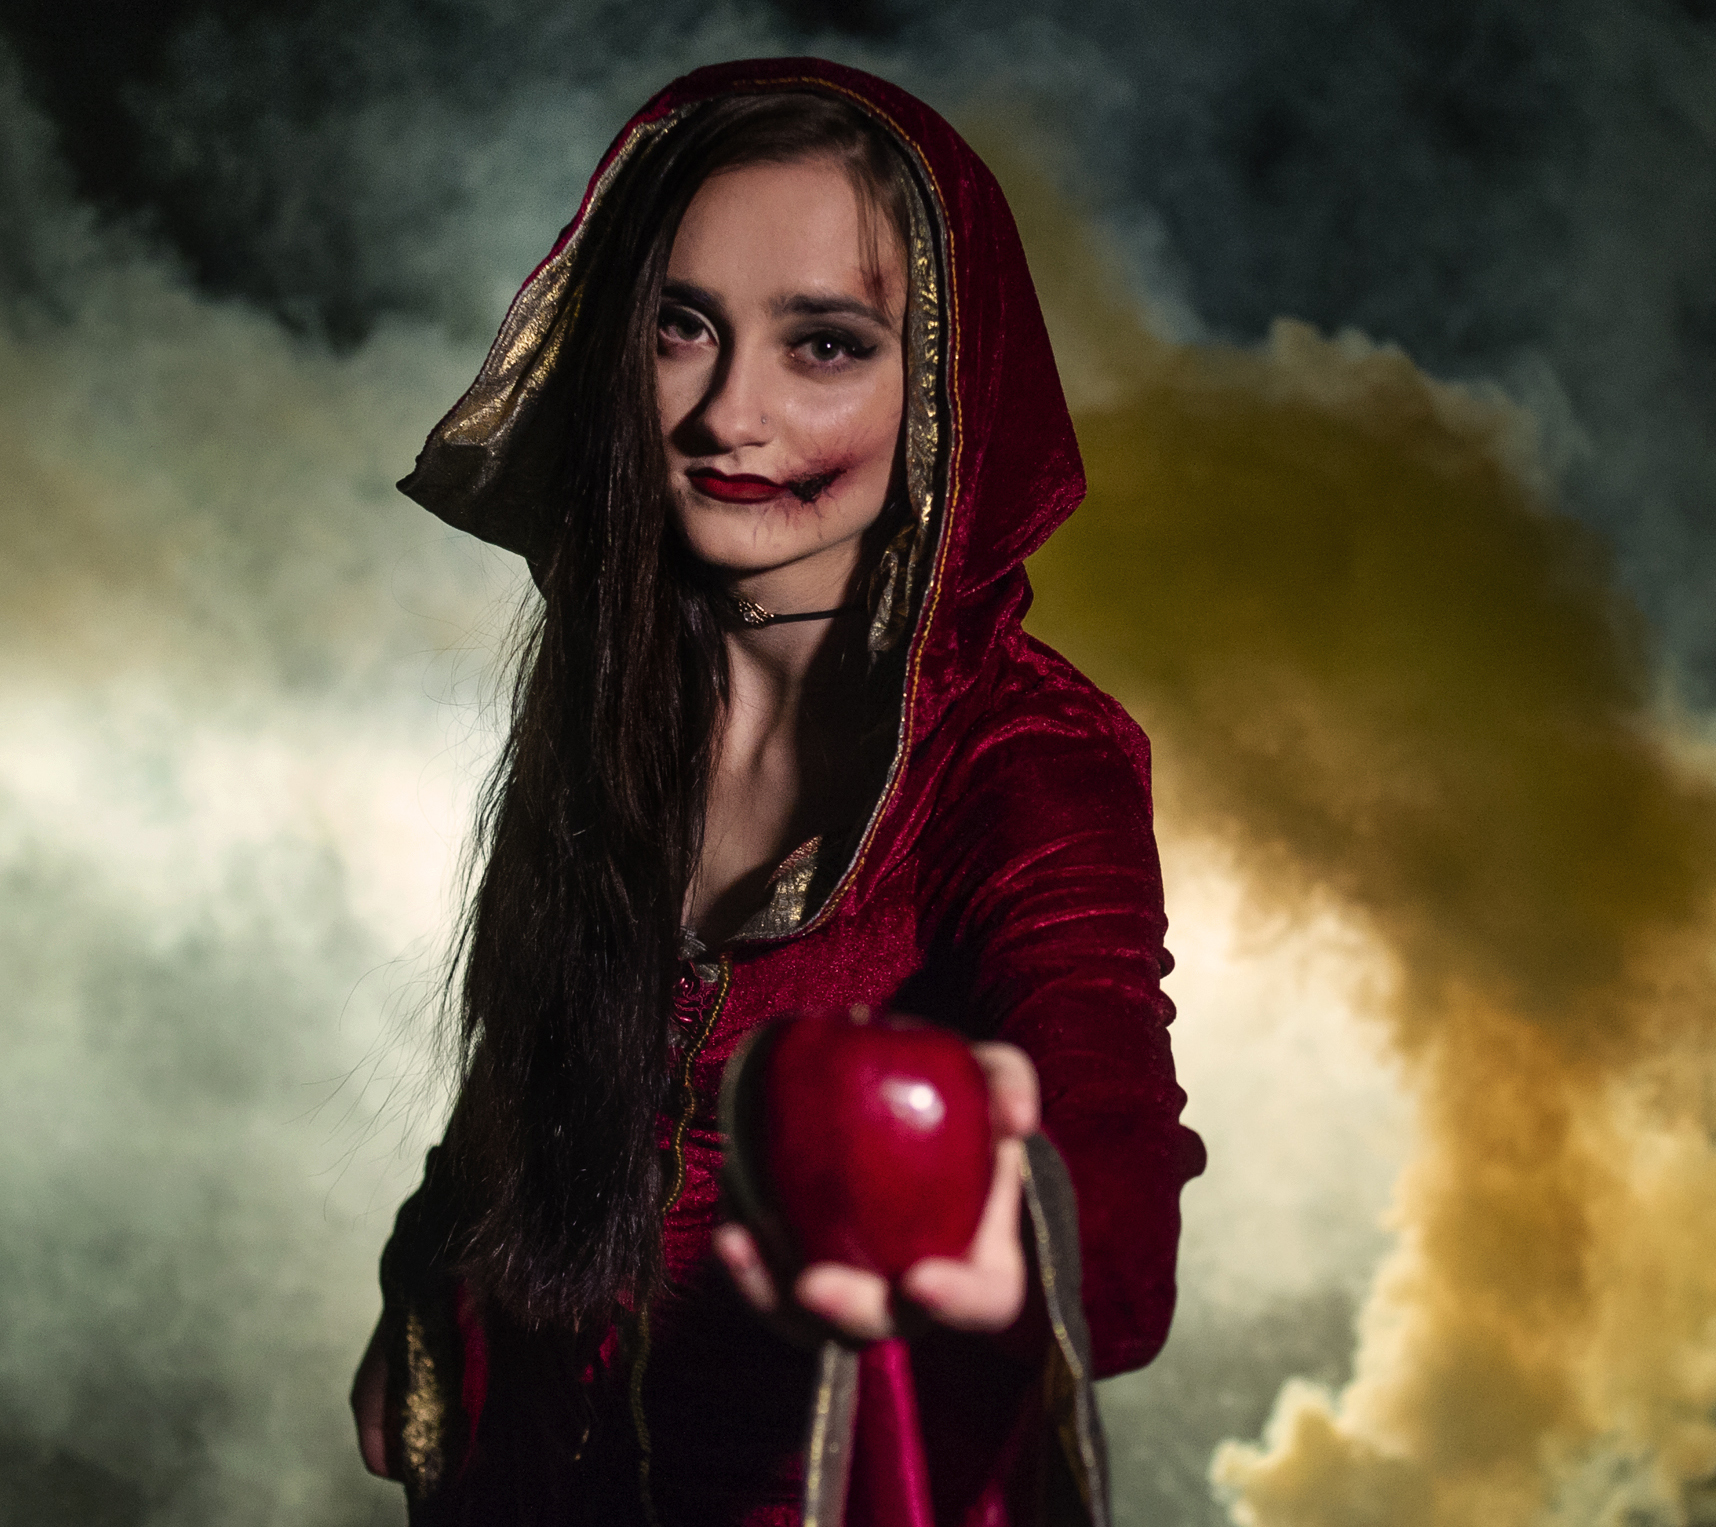 Erin as Evil Witch 2018